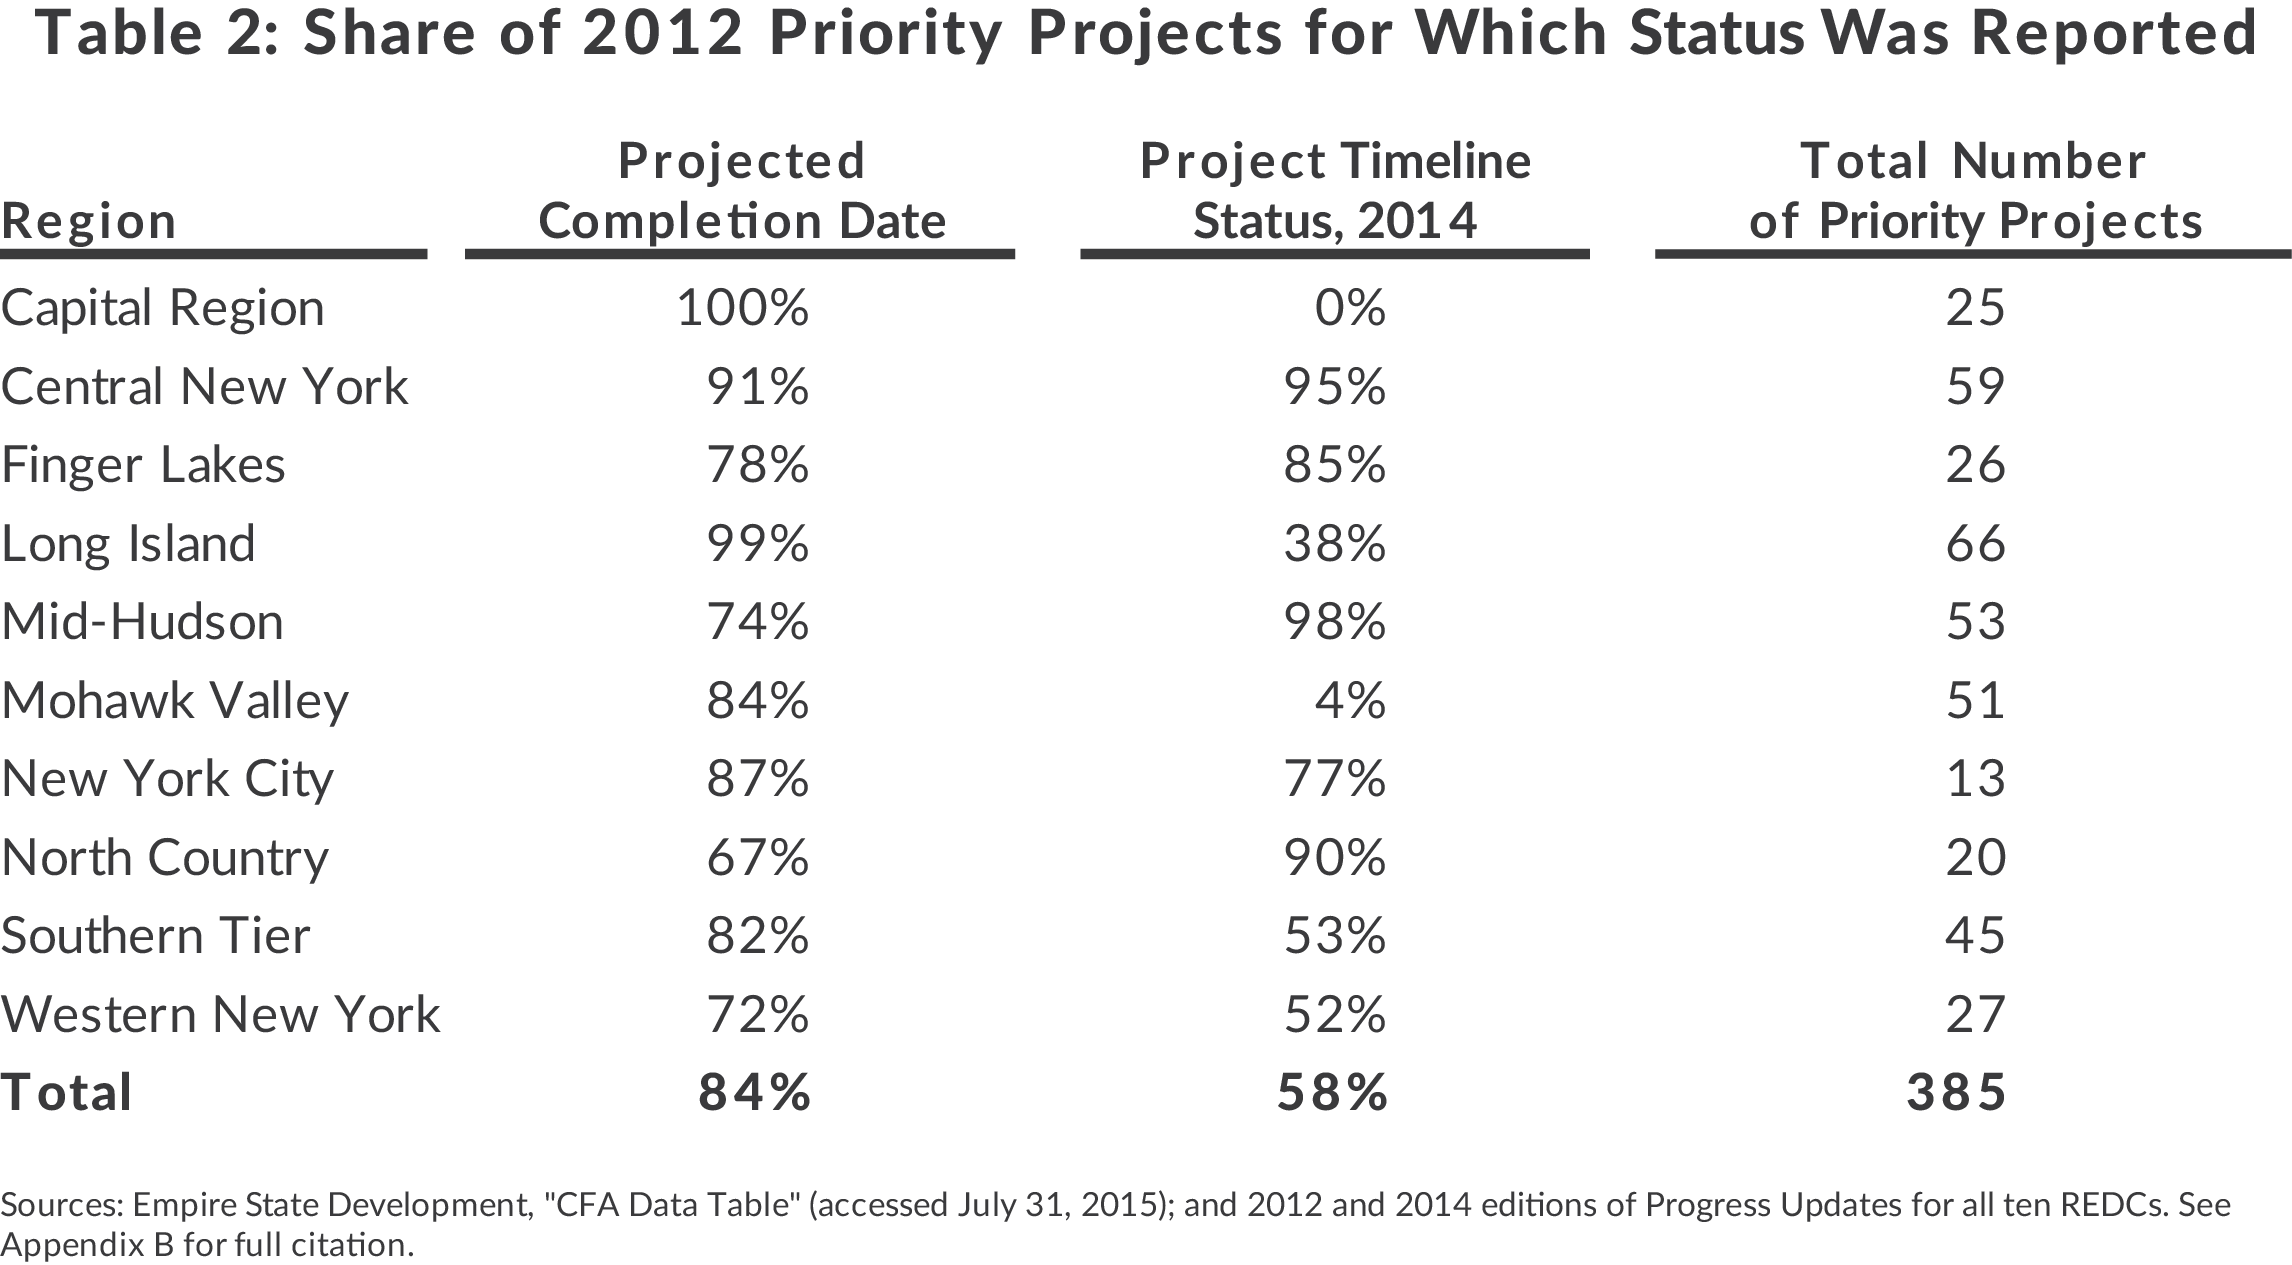 Table showing share of priority projects with state reports by Regional Economic Development Council